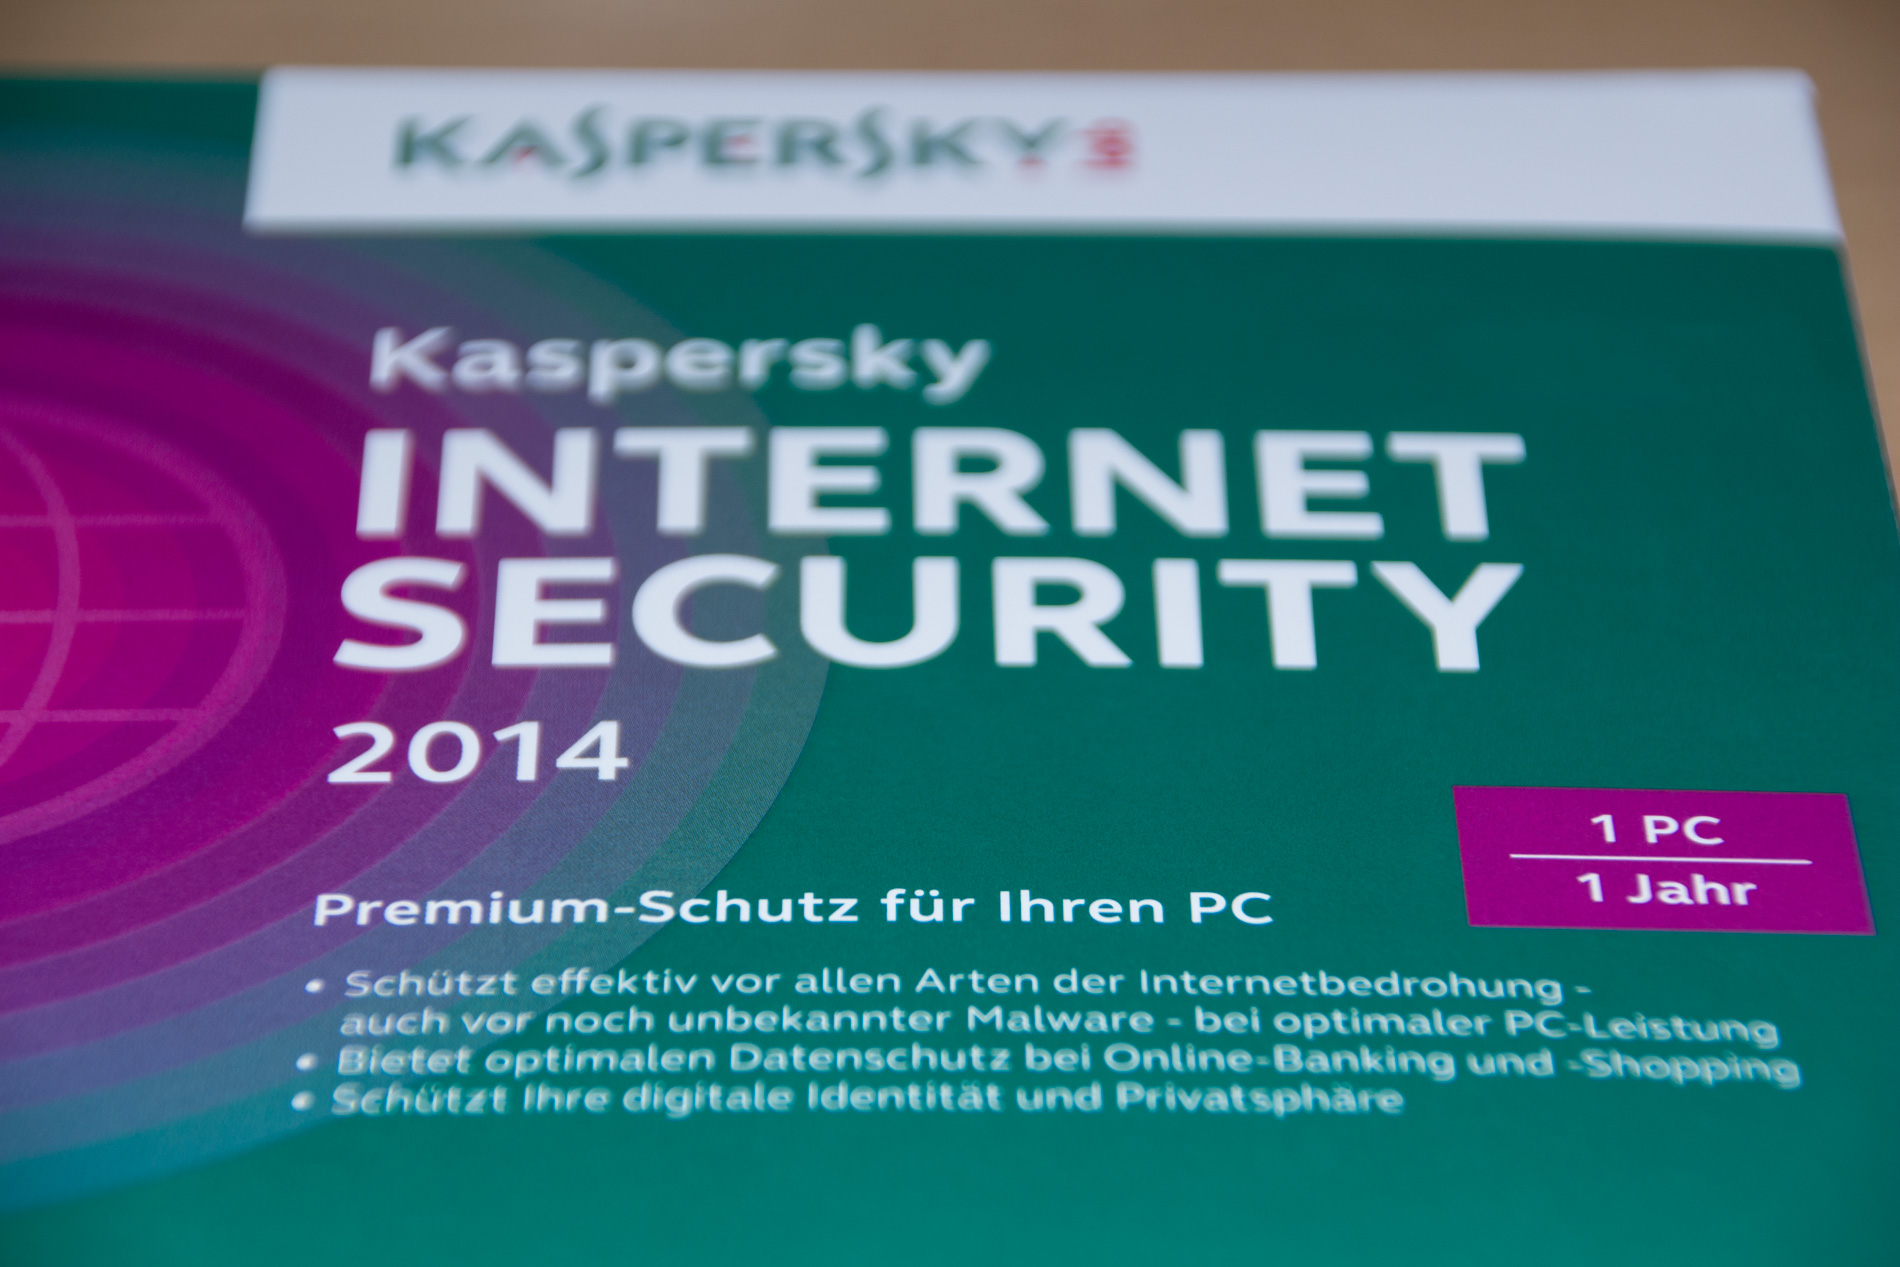 Kaspersky Internet Security 2014 - Giveaway - Hack4Life